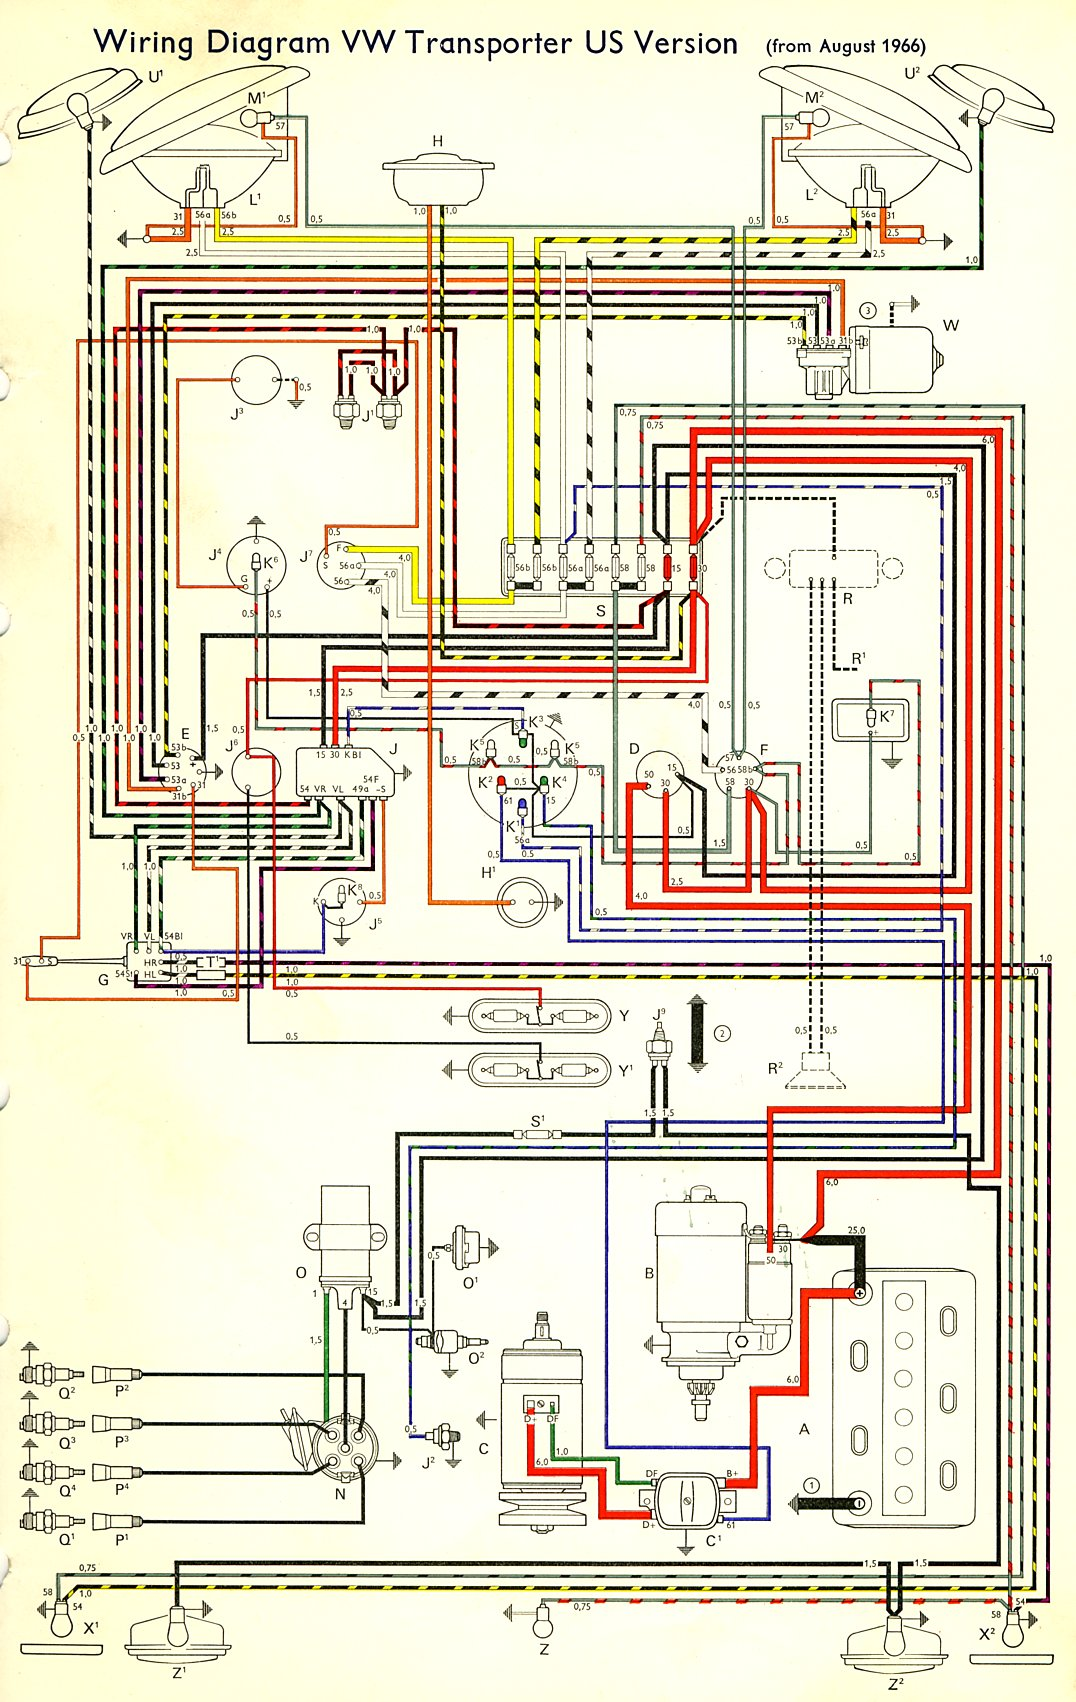 Volkswagen Jetta Radio Fuse Box Diagram 1967 Bus Wiring Diagram Usa Thegoldenbug Com